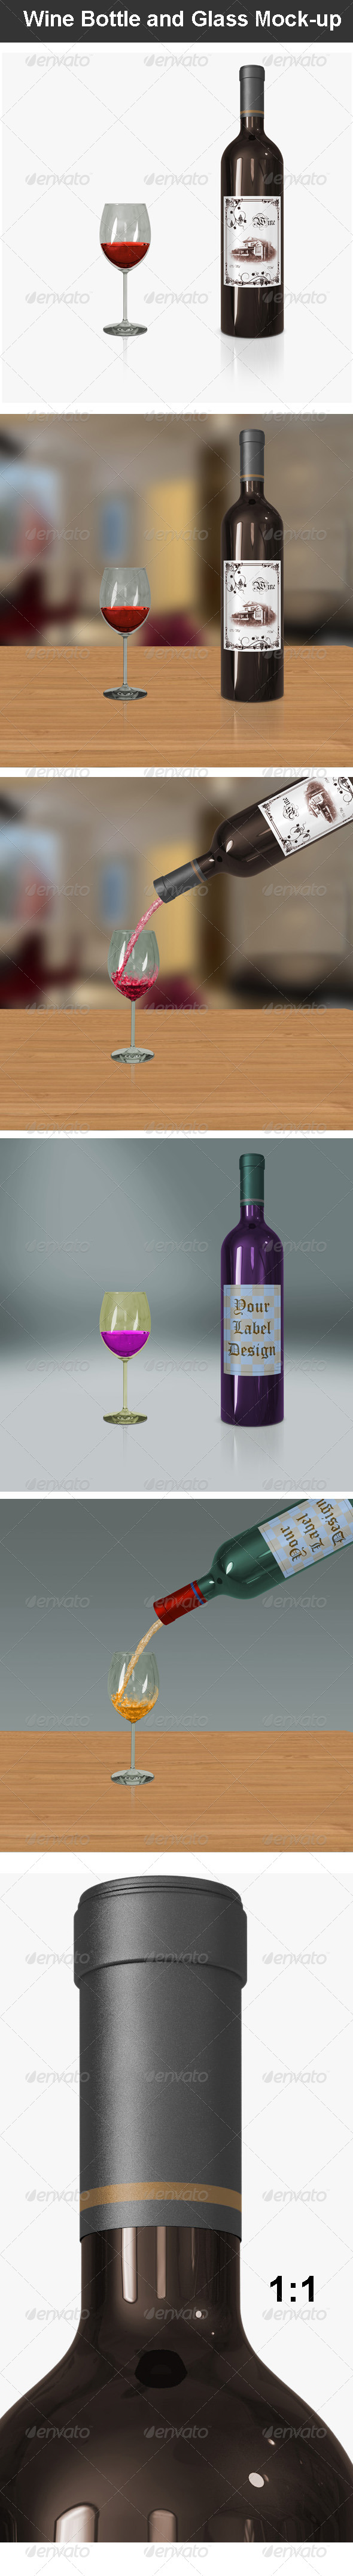 GraphicRiver Wine Bottle and Glass Mock-up 7232479